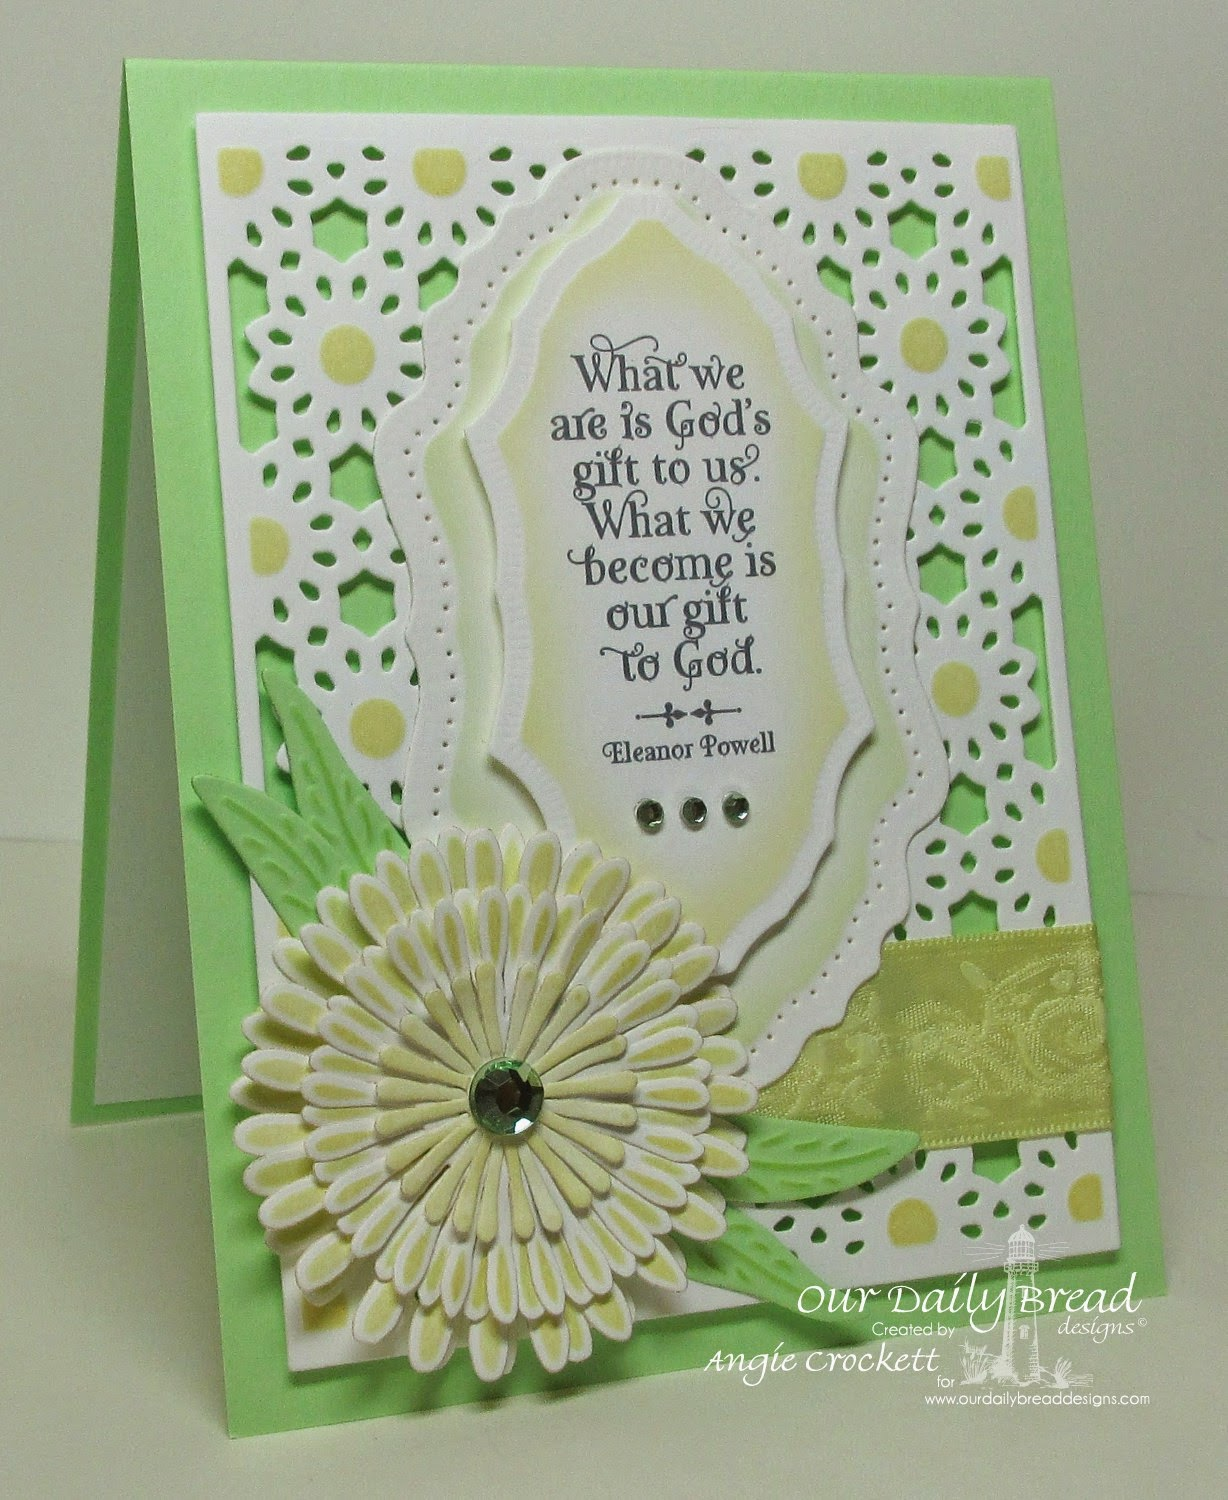 ODBD God Quotes, ODBD Custom Asters and Leaves Dies, ODBD Daisy Chain Die, ODBD Custom Flourish Pattern Dies, Card Designer Angie Crockett